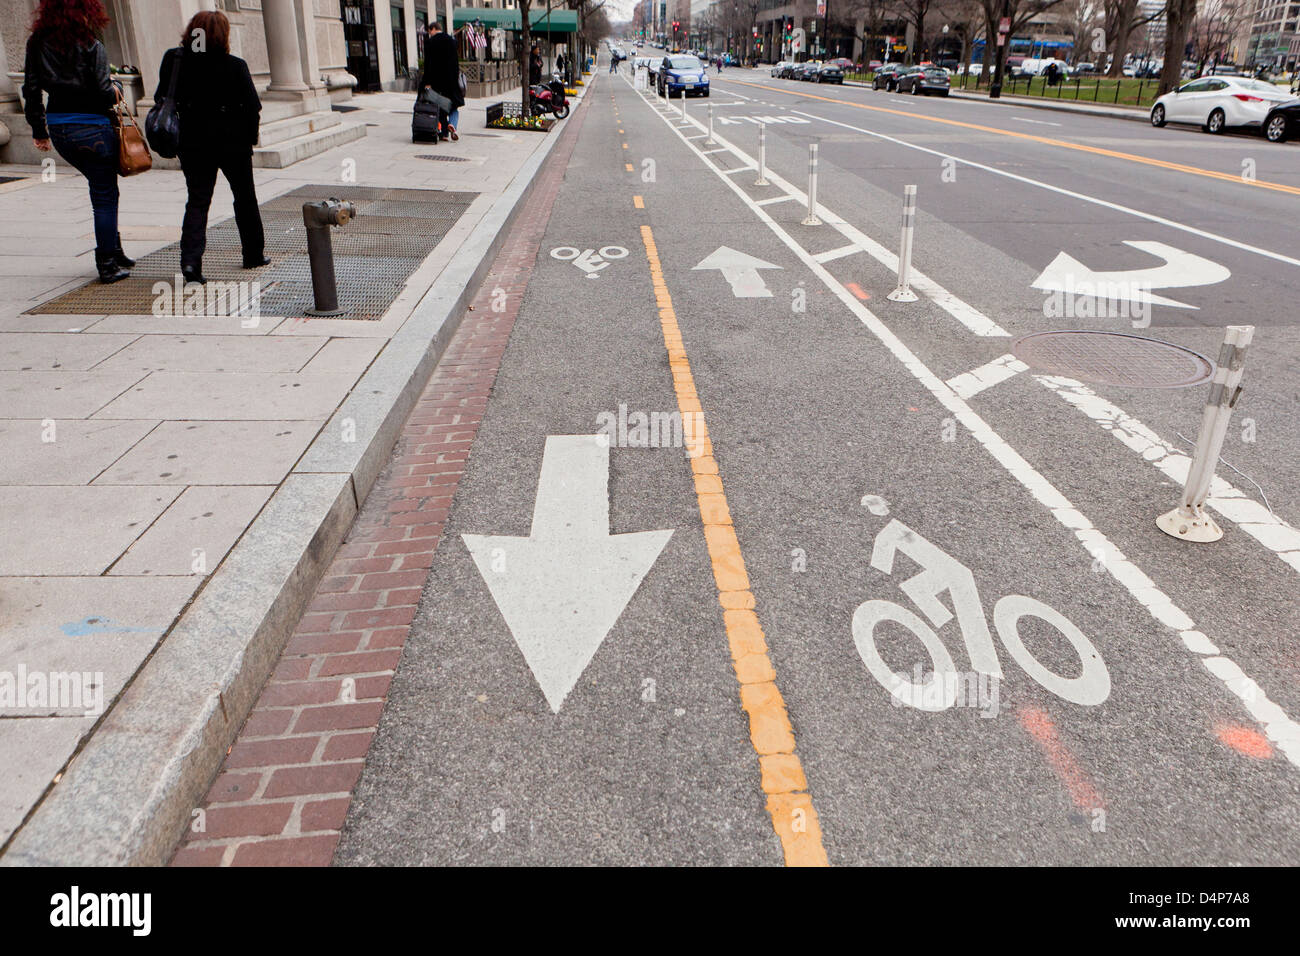 Bike lane - Stock Image